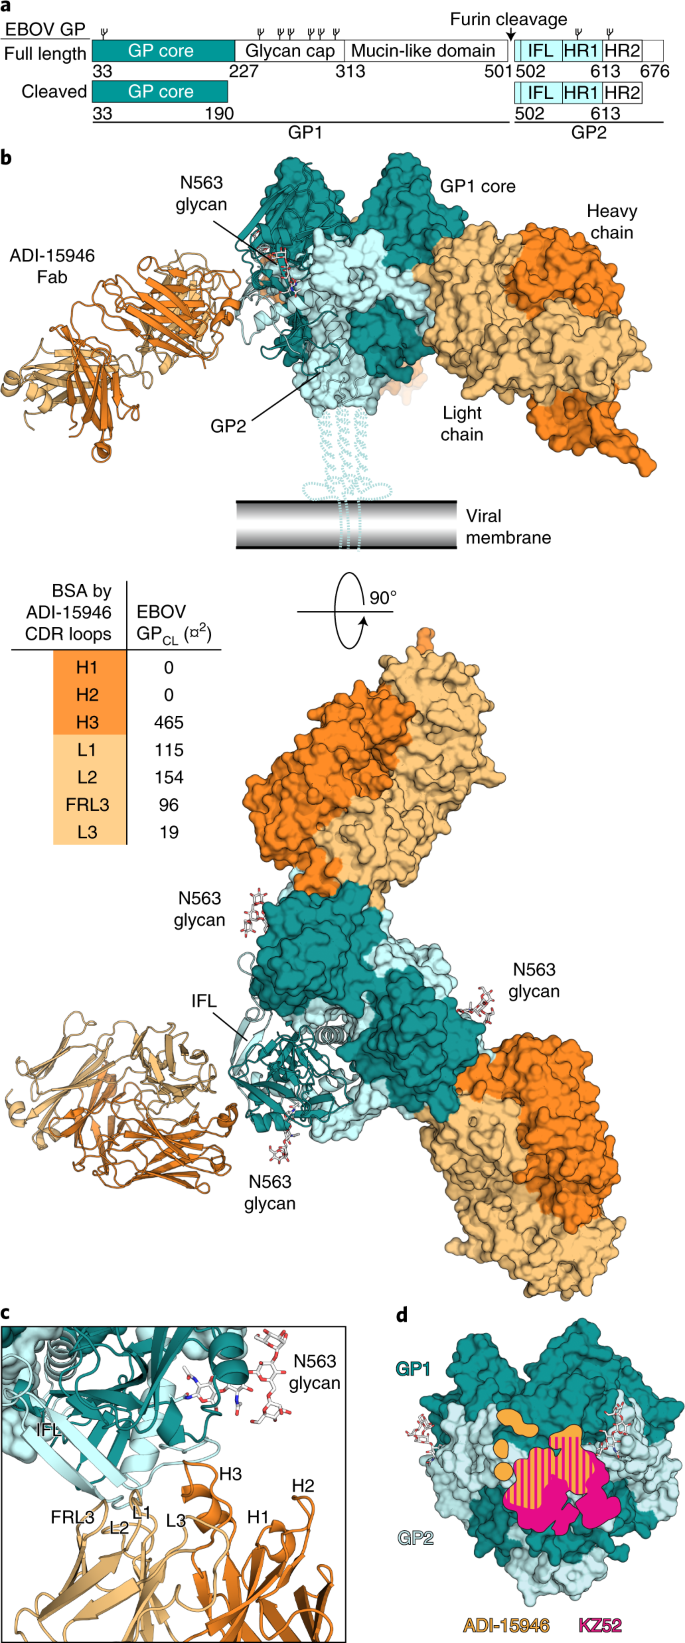 Structural basis of broad ebolavirus neutralization by a human